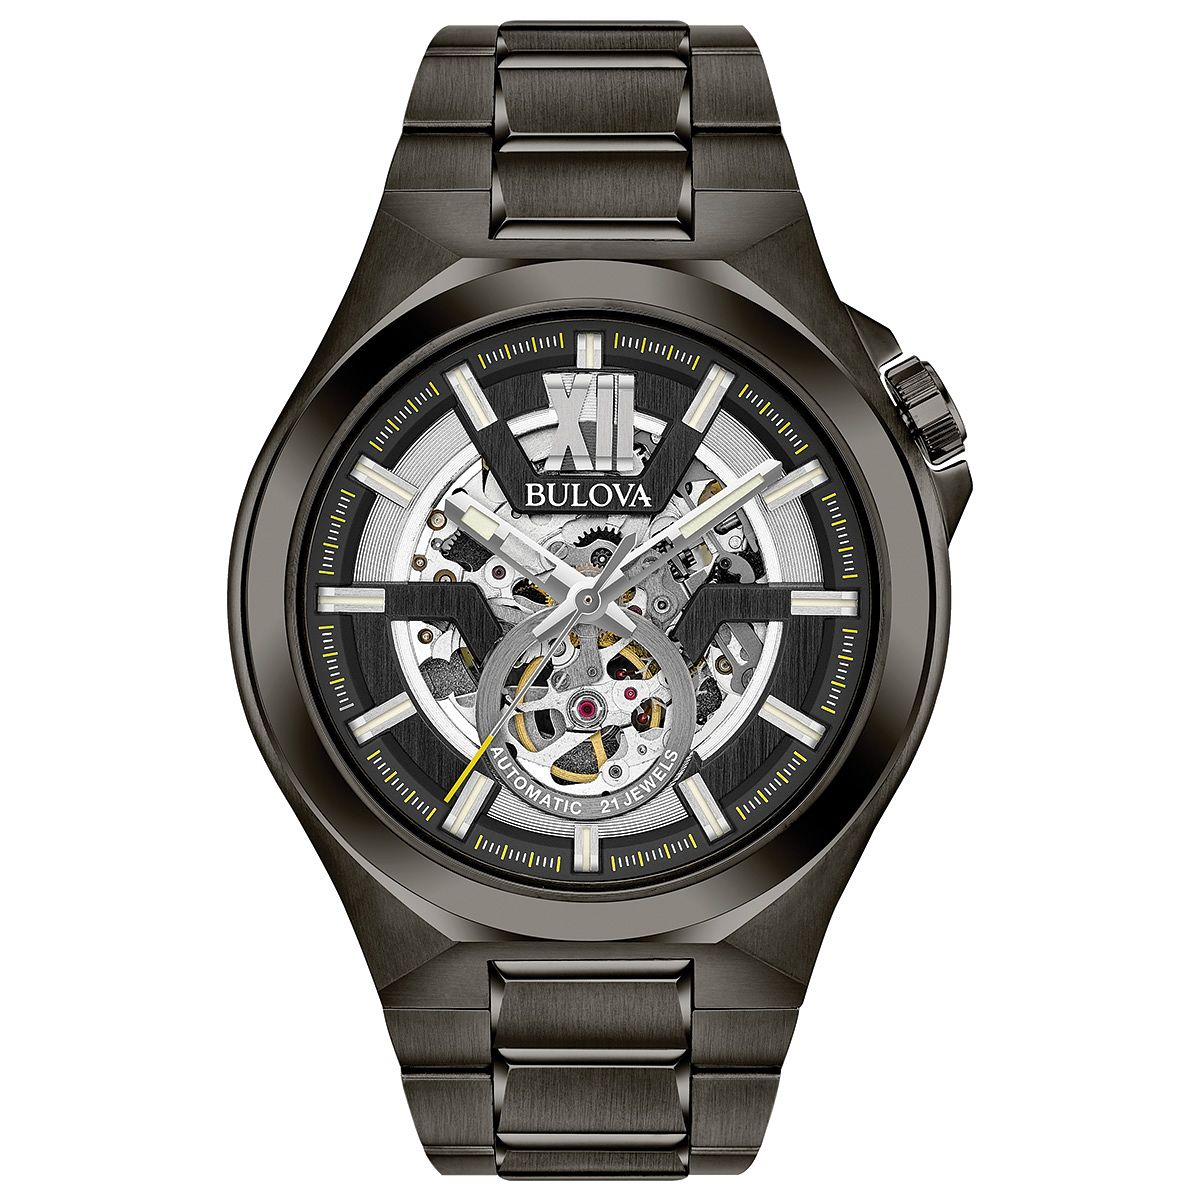 Bulova Men's Classic Automatic Gunmetal Bracelet Watch - Product number 6182615